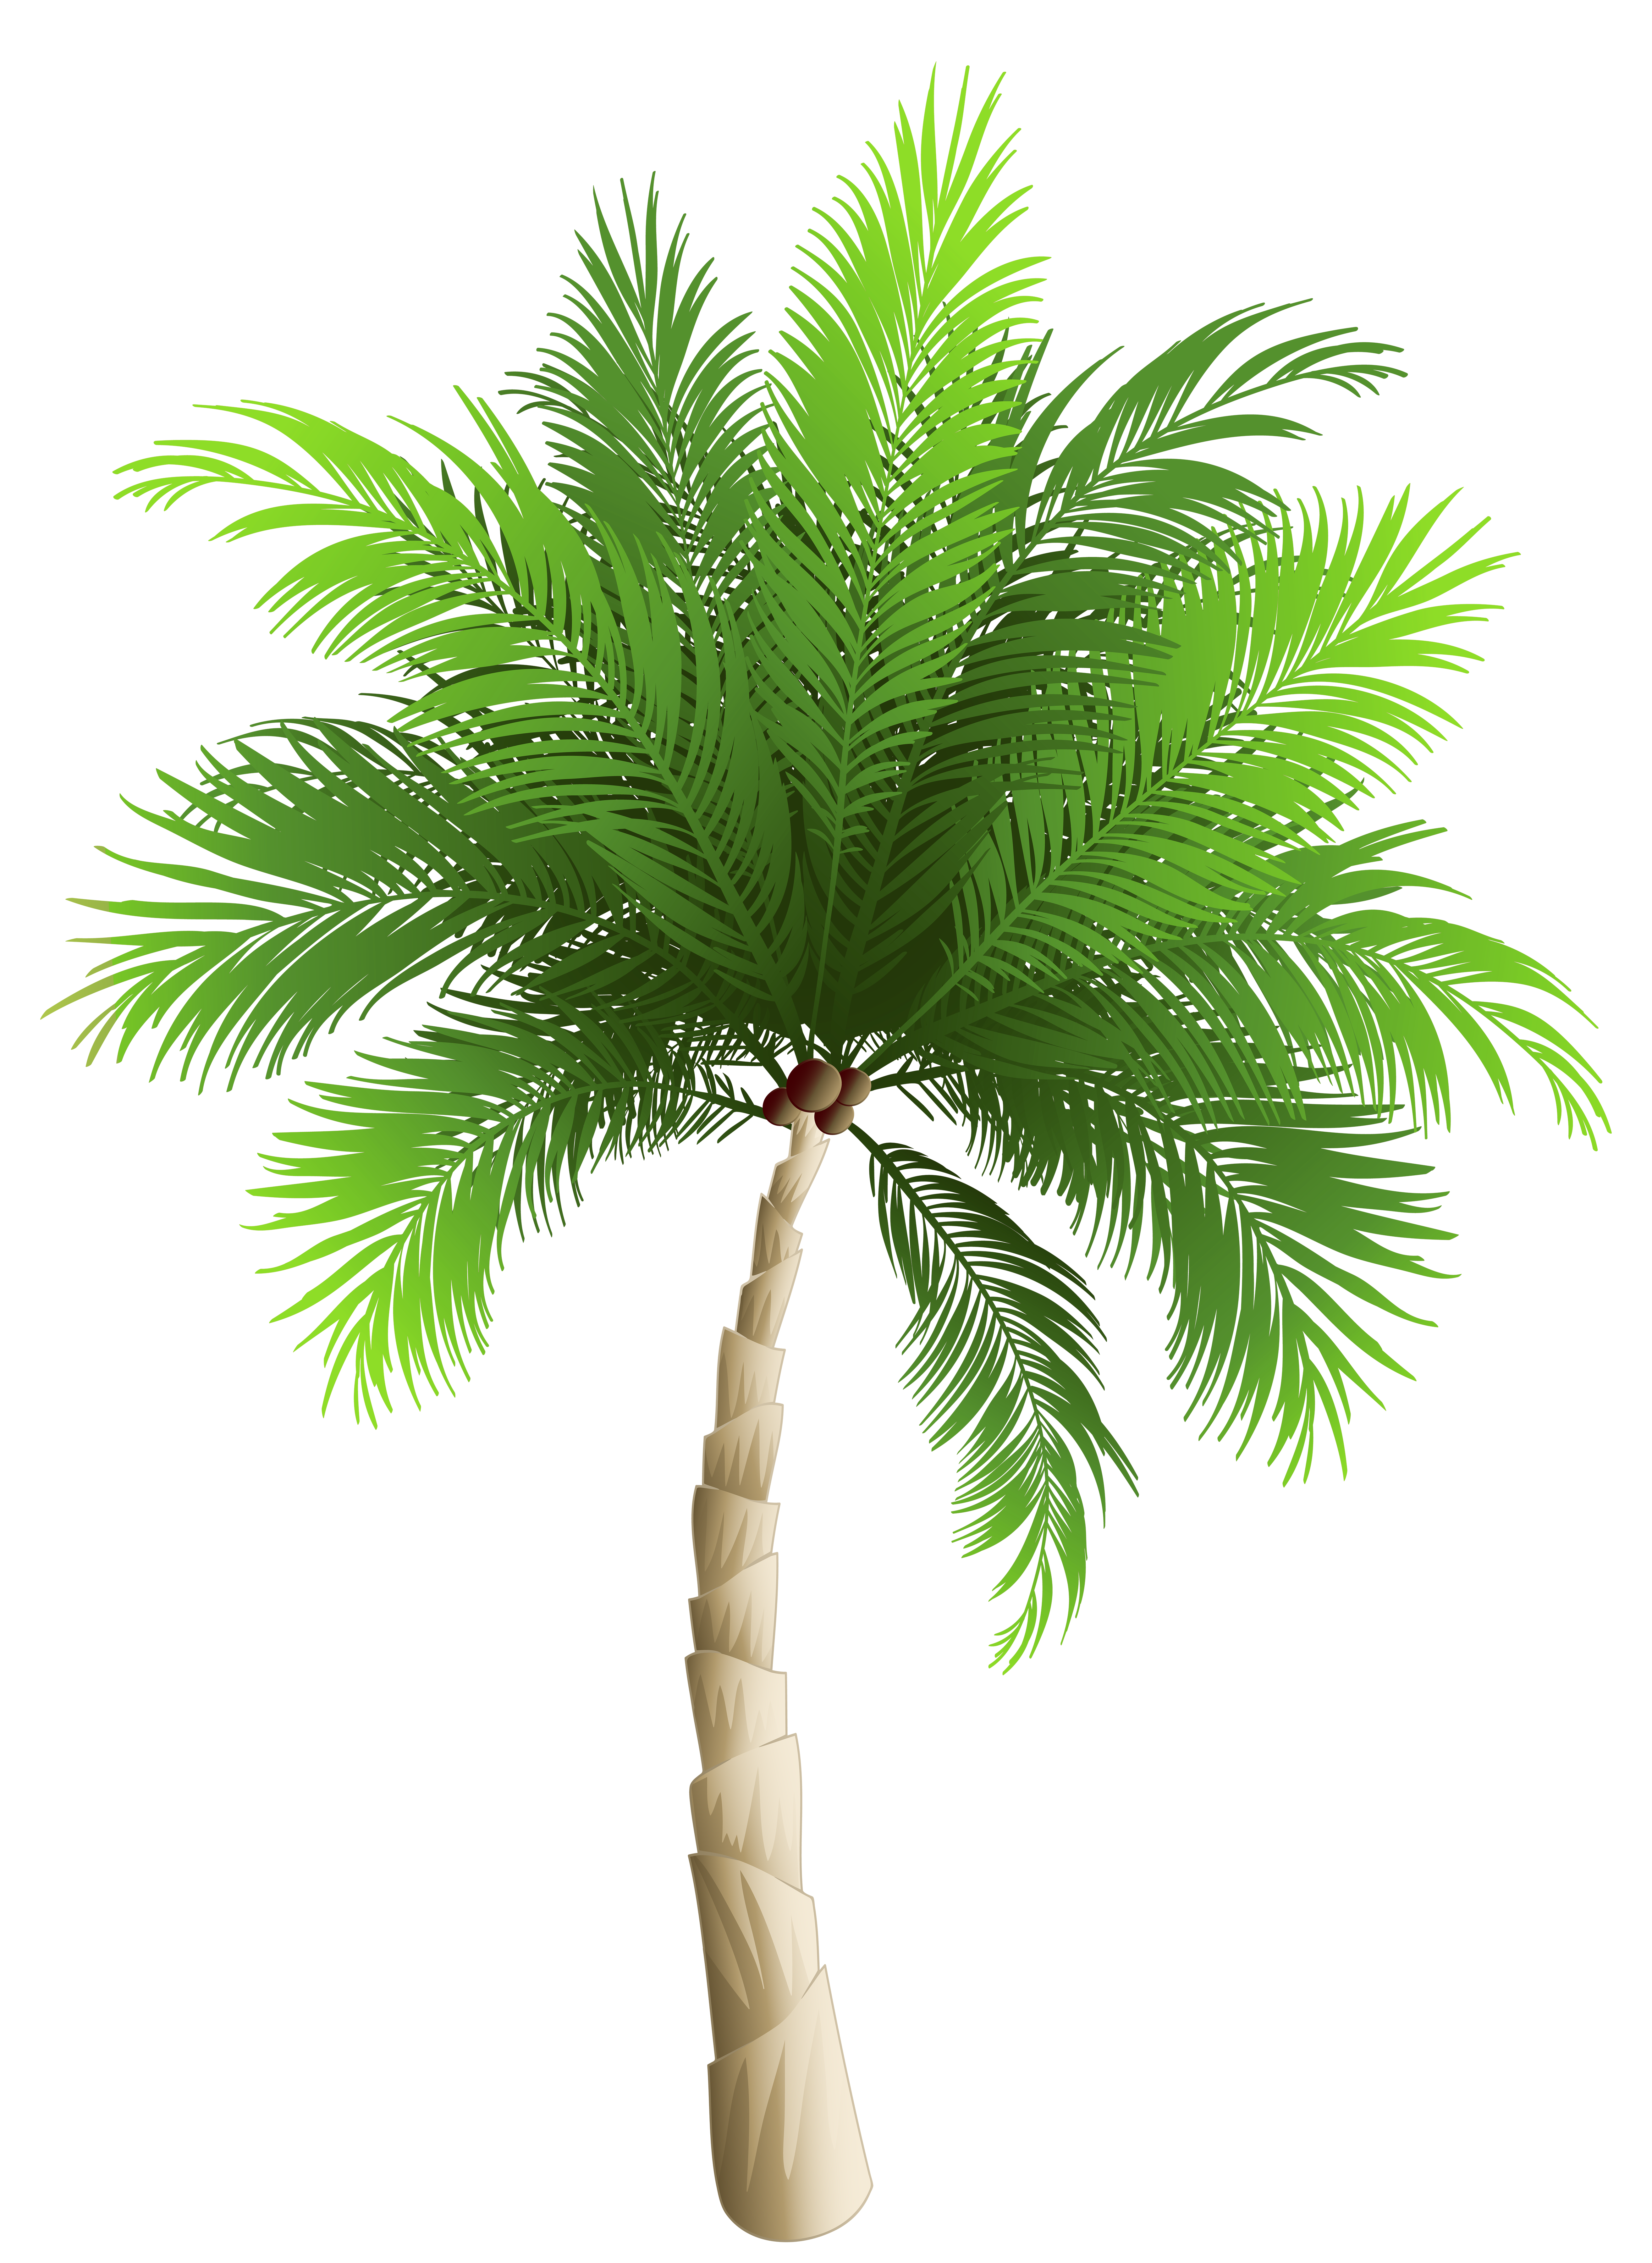 Pin By Sandro Rocha On Sandro Palm Tree Png Palm Trees